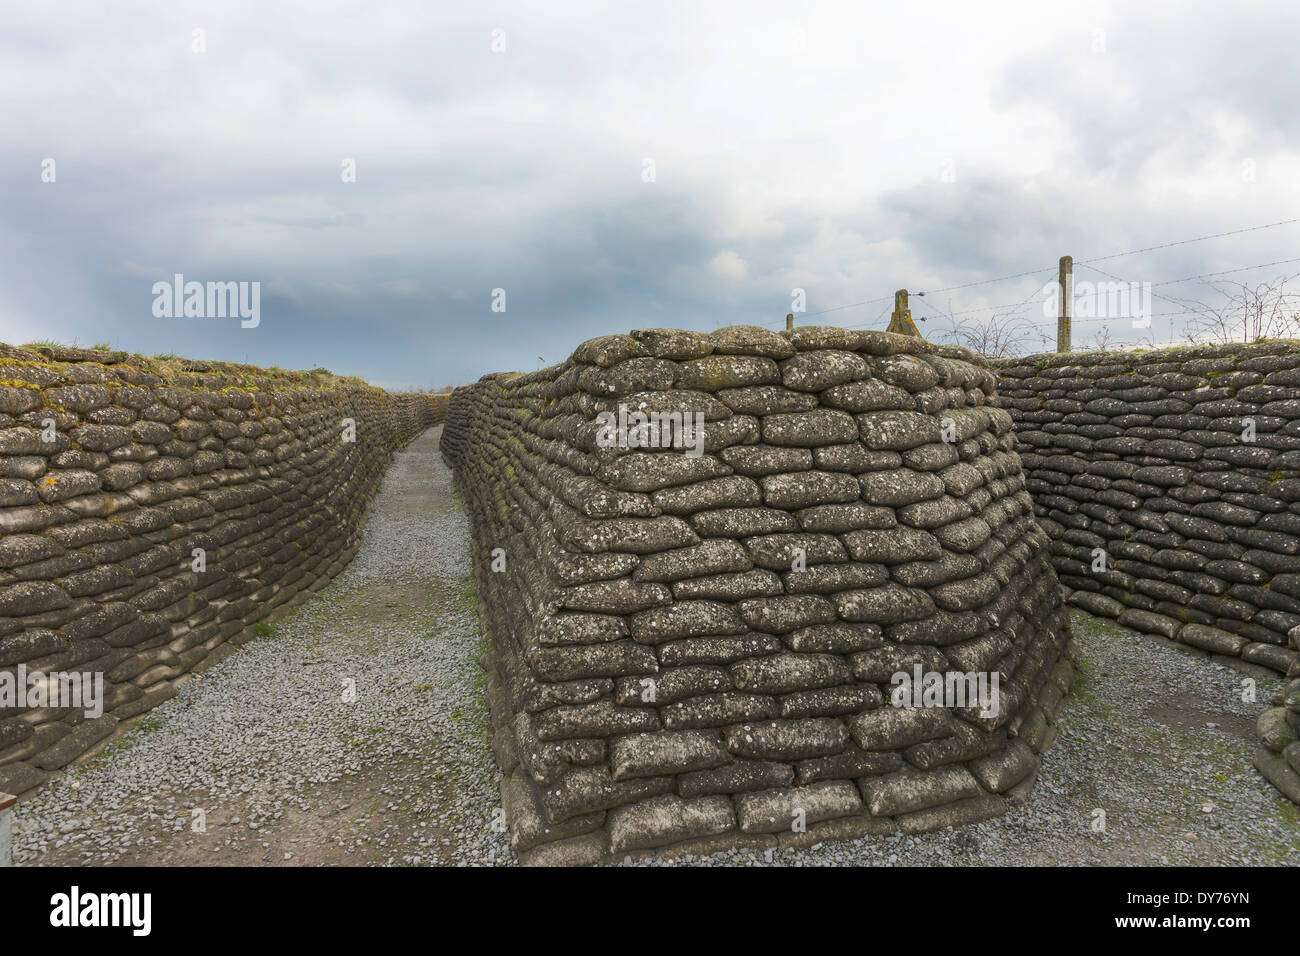 World War I trenches in Flanders, near Diksmuide. - Stock Image